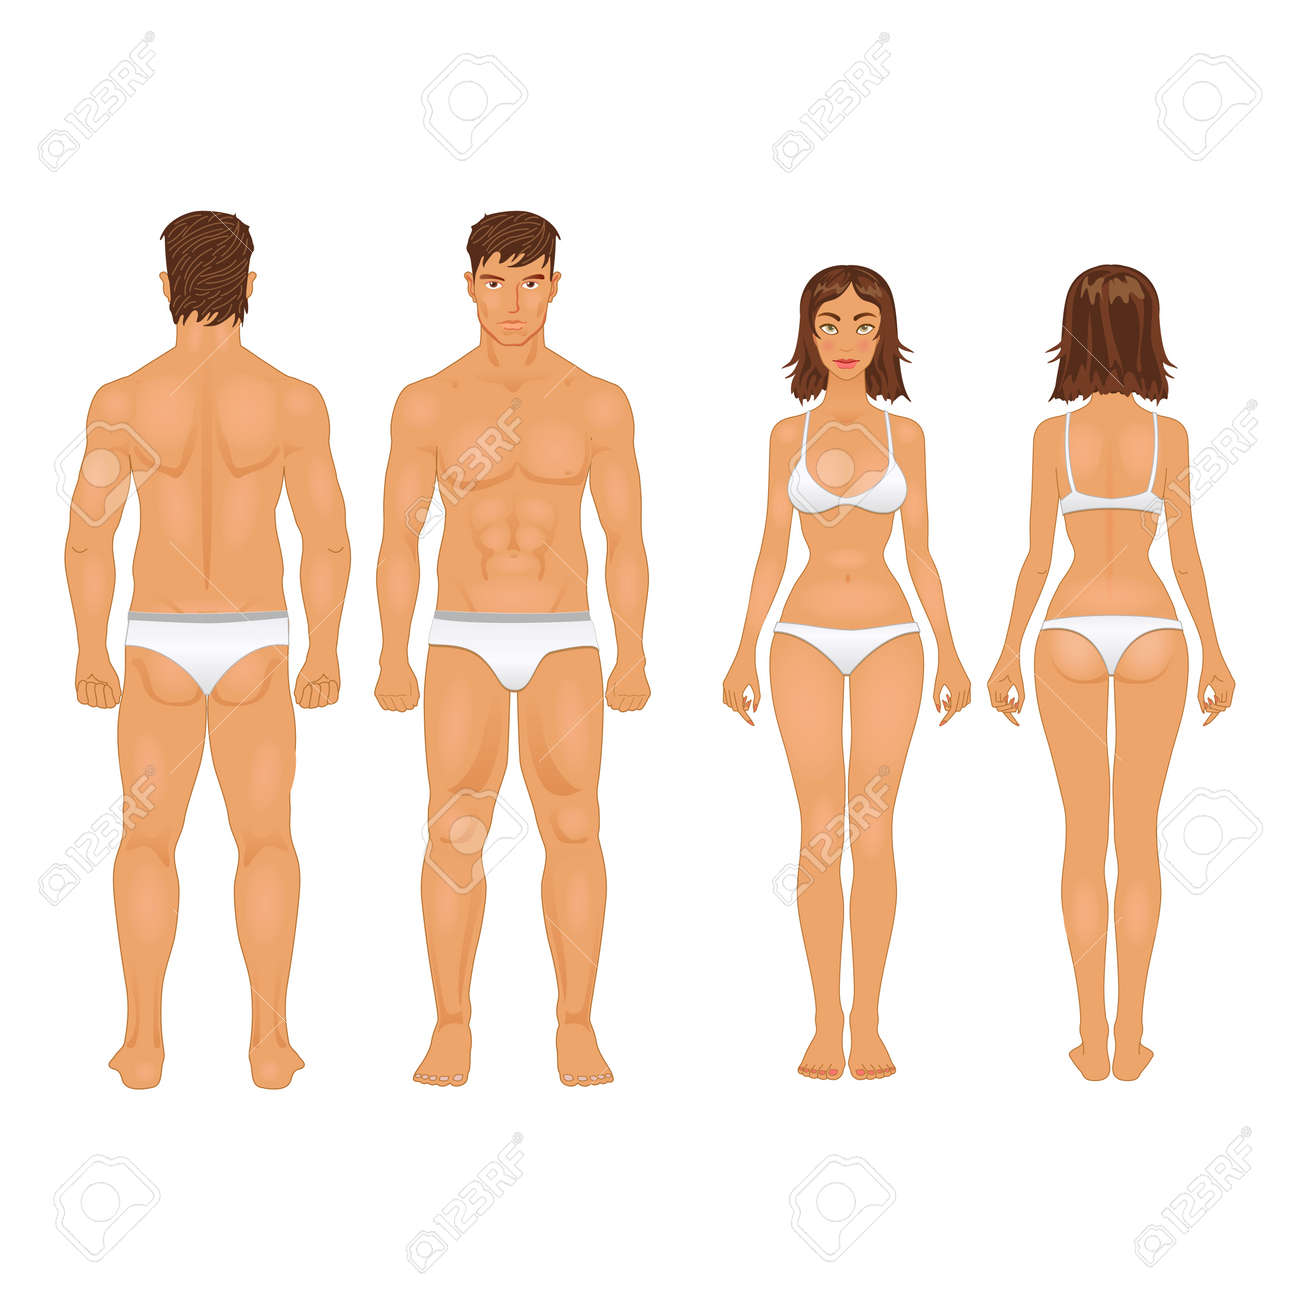 Human Body Parts Stock Photos Royalty Free Human Body Parts Images